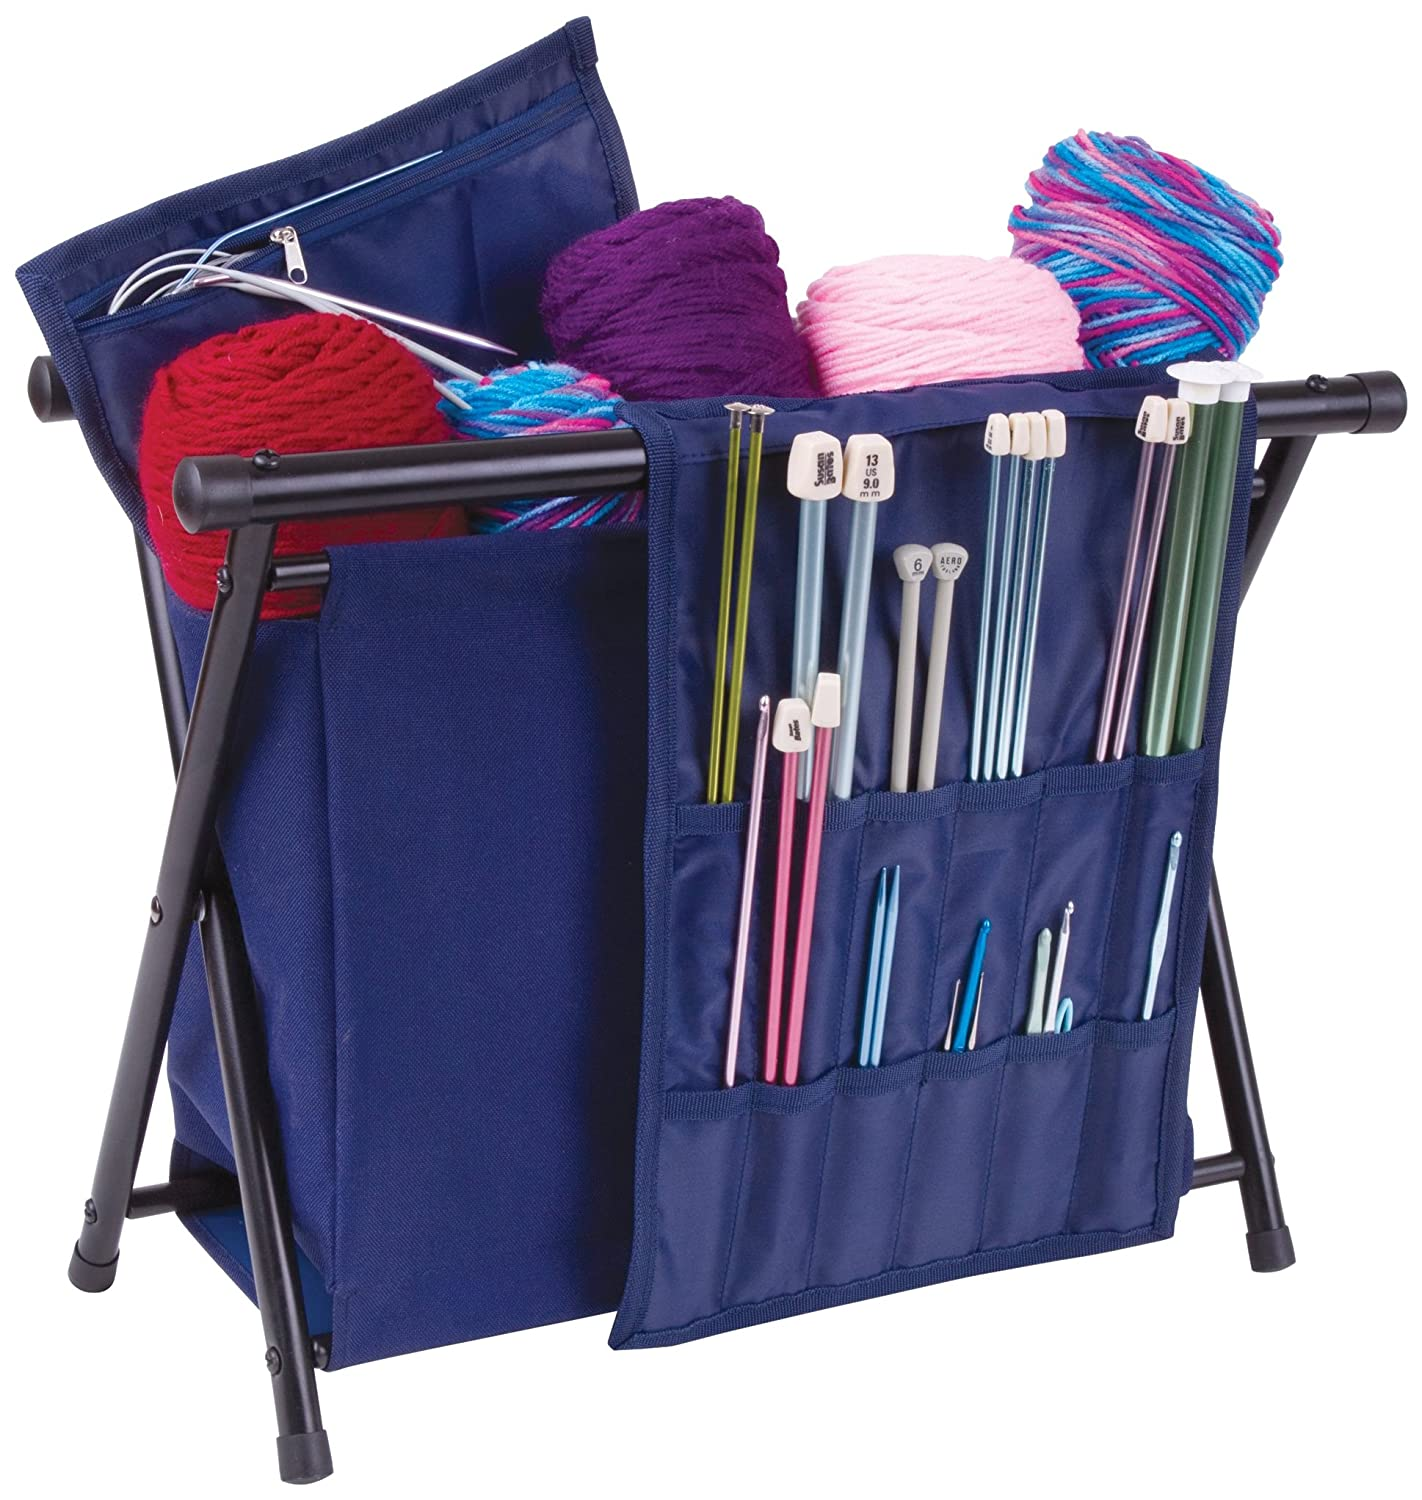 ArtBin Needle Arts Caddy- Yarn Storage for Knitting and Crocheting - Navy, 6933AM ARUFZ